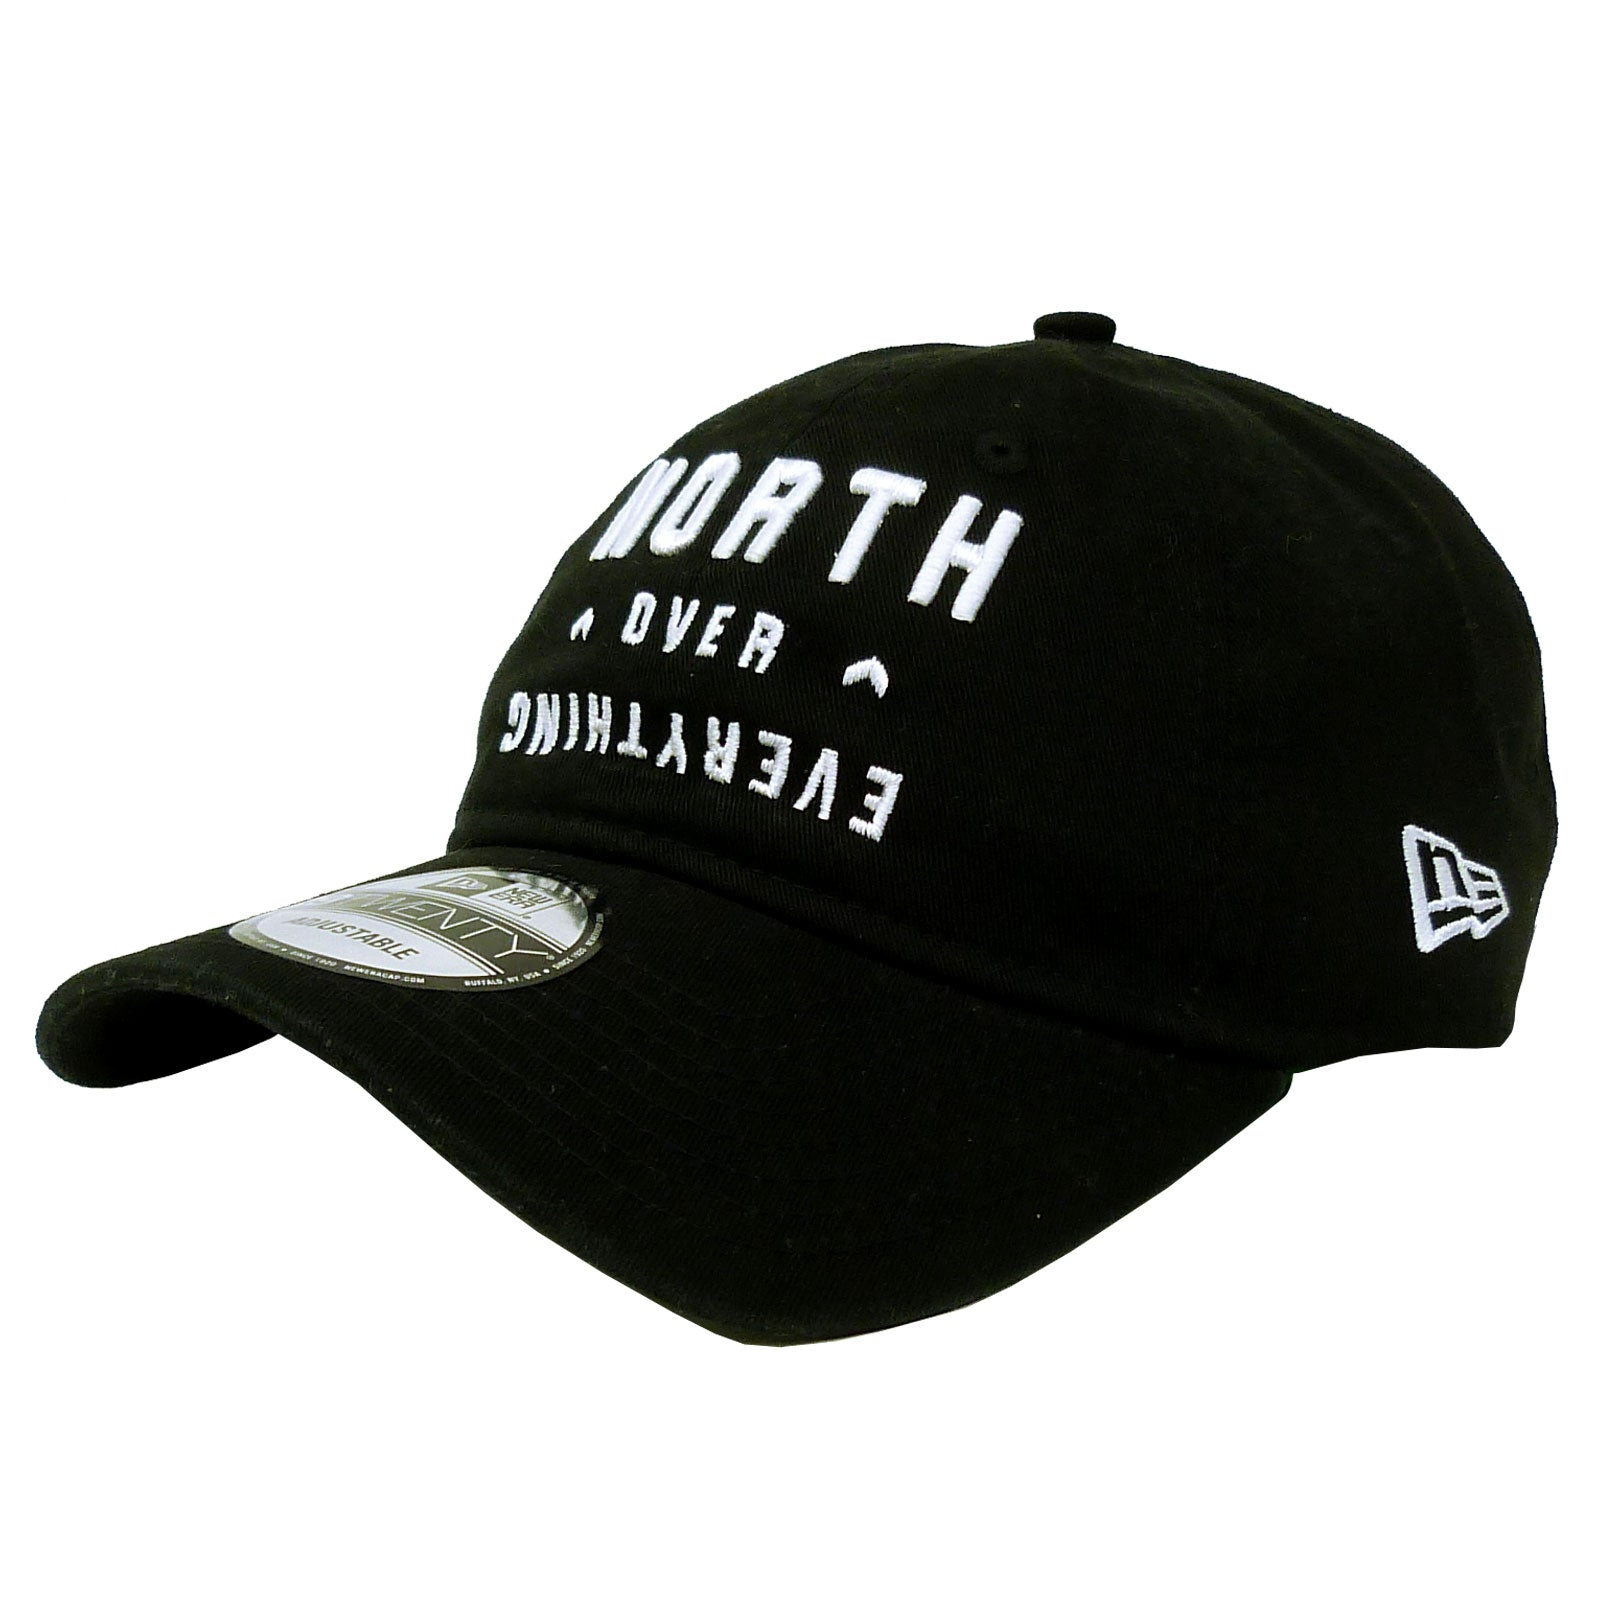 d0f798a17d8 Toronto Raptors Adult North Over Everything 920 Woven Strapback Hat ...